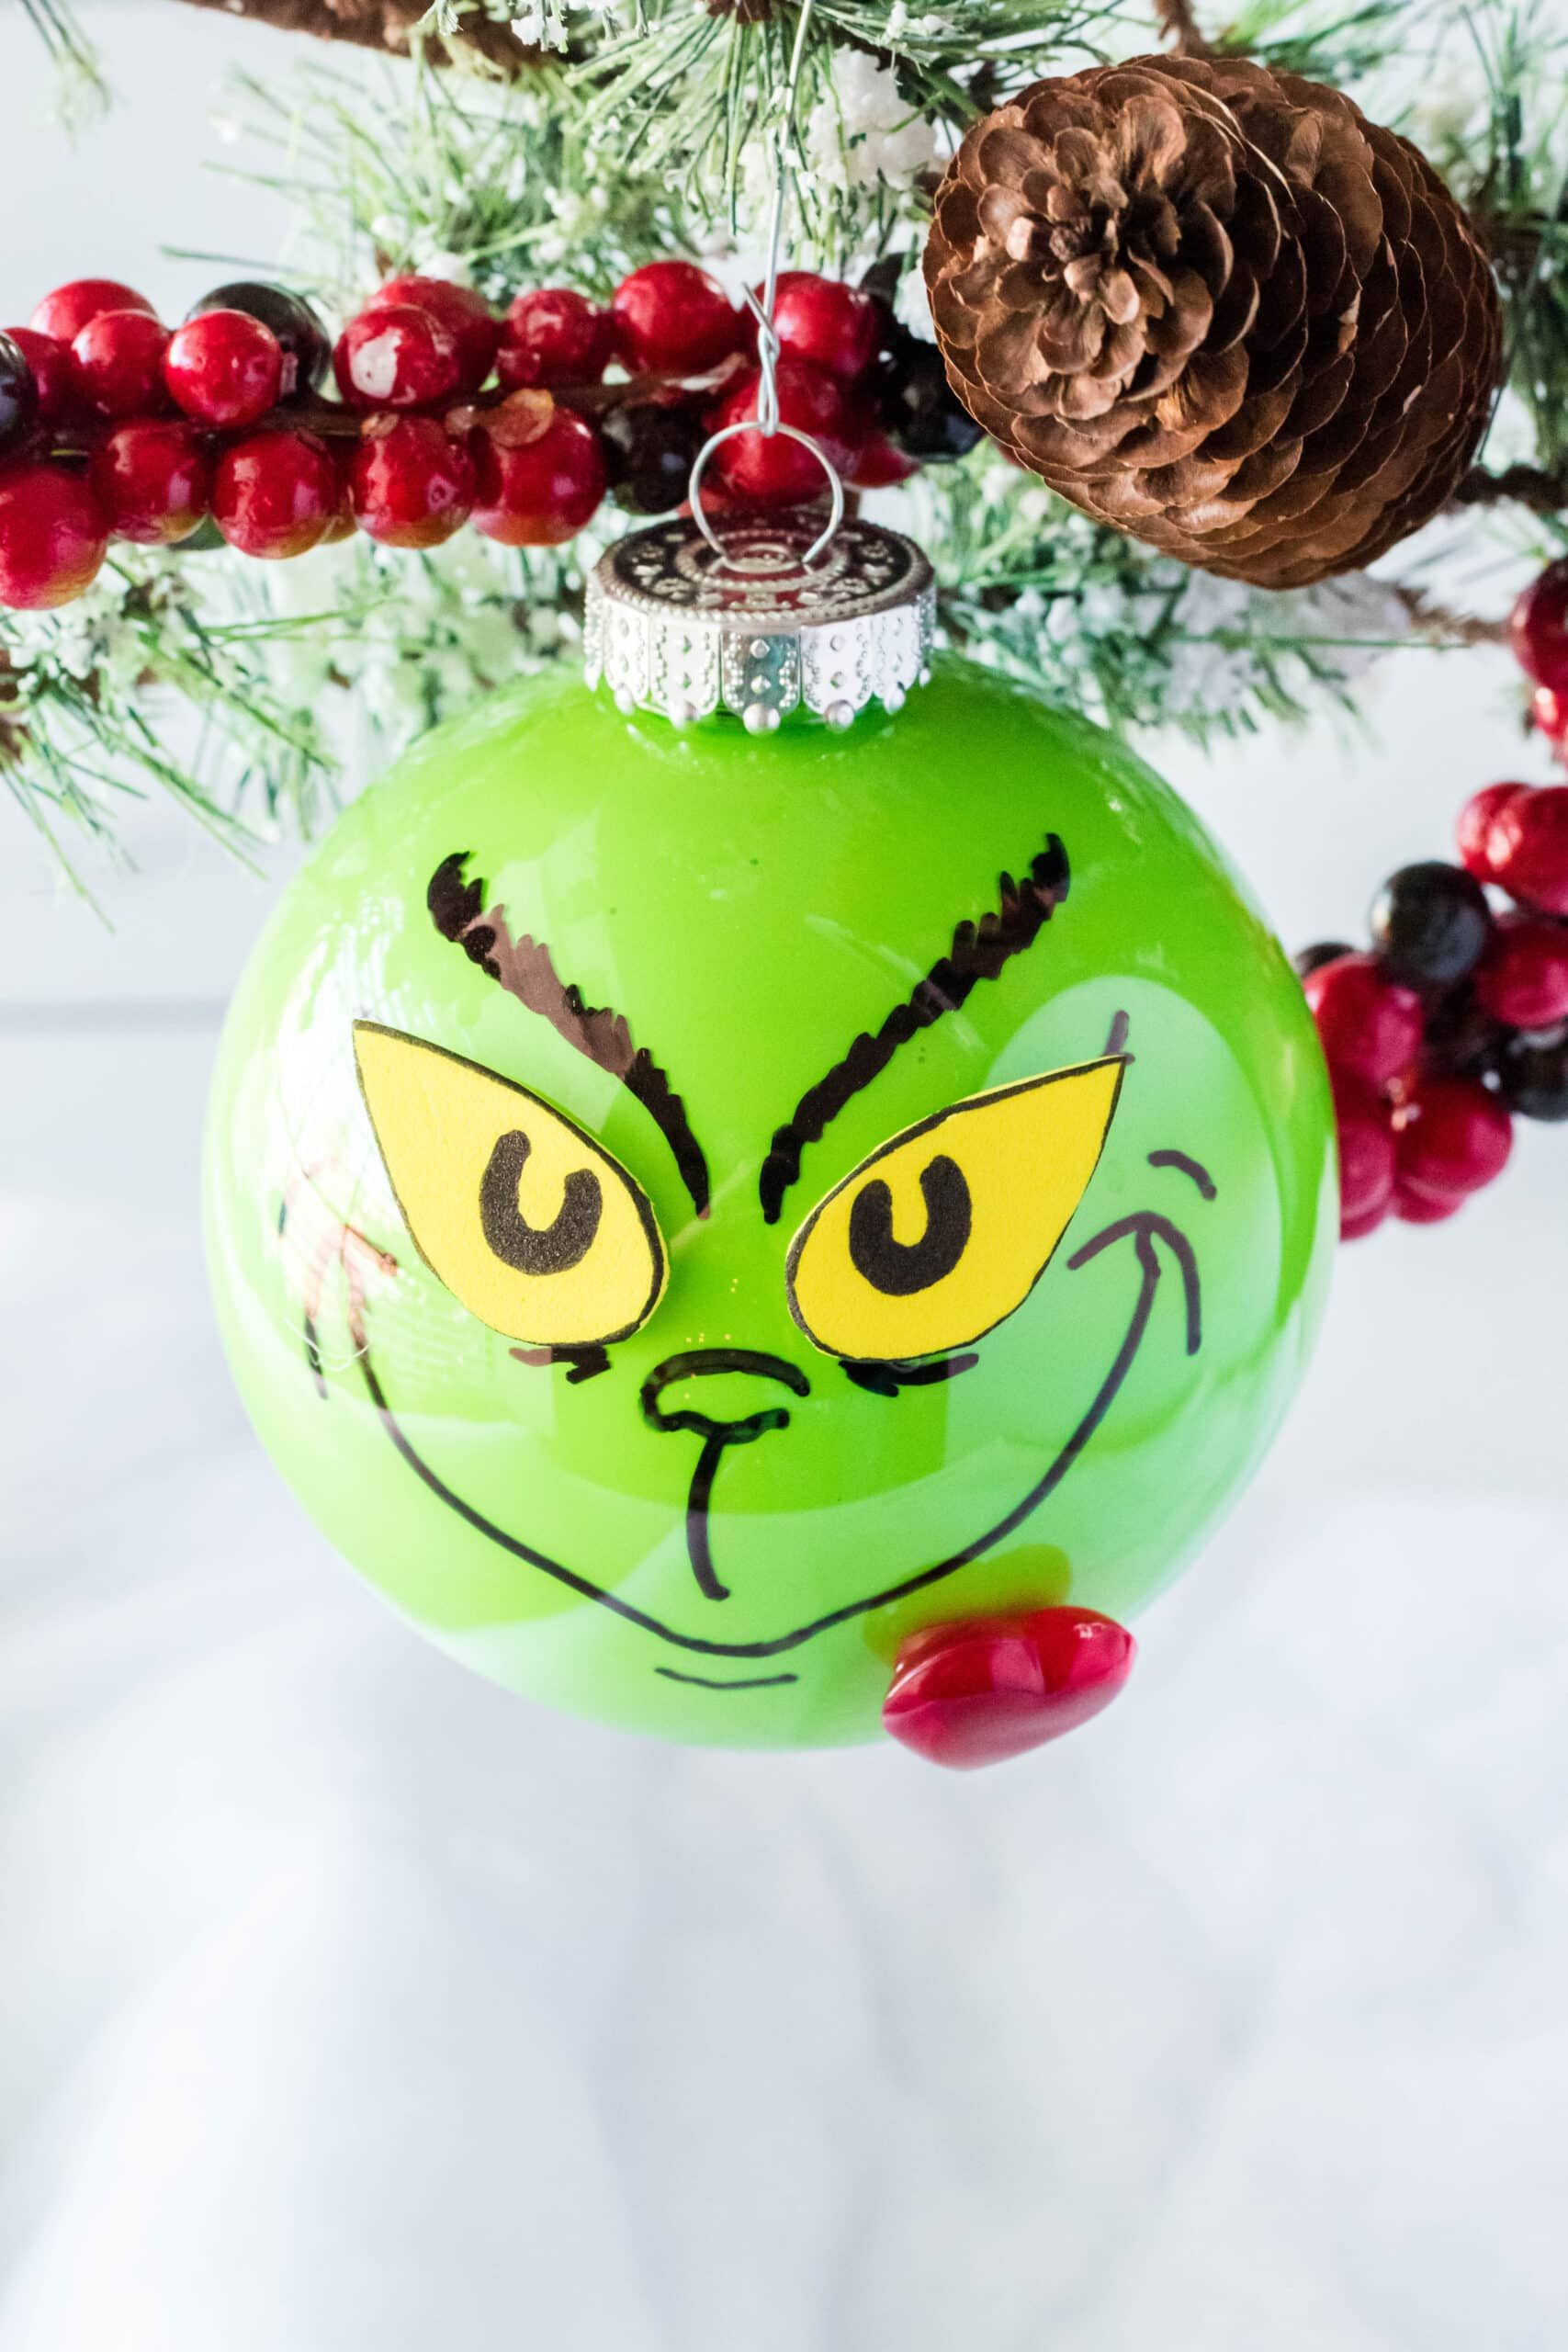 The Best Grinch Ideas Simplistically Living Grinch Ornaments How To Make Ornaments Christmas Crafts For Gifts